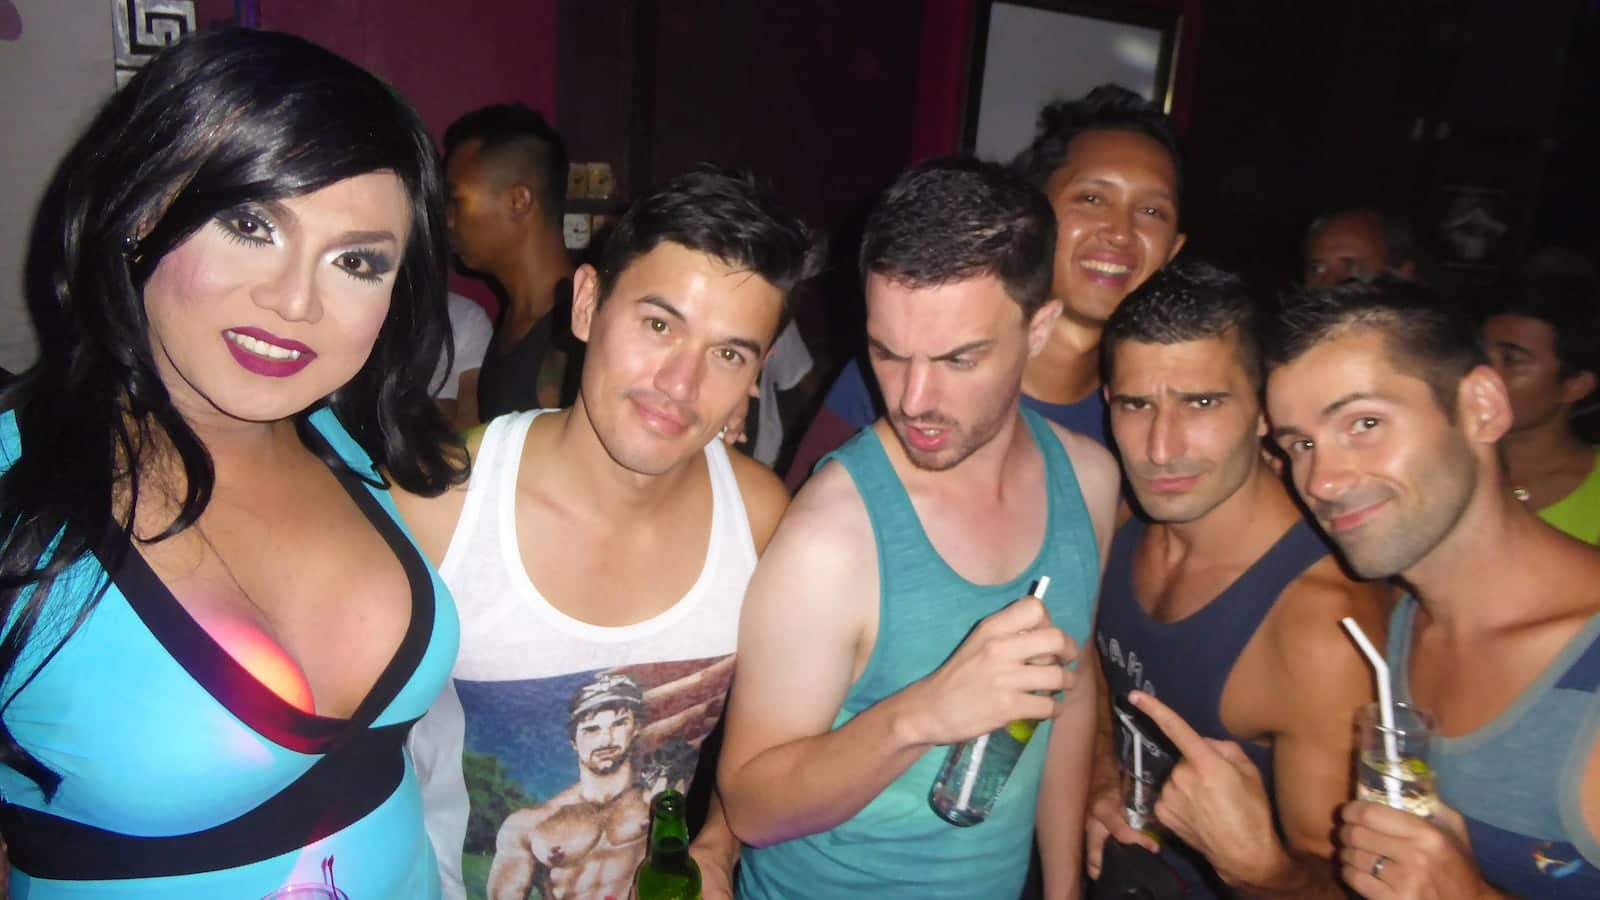 Partying at the gay Bali bars and clubs